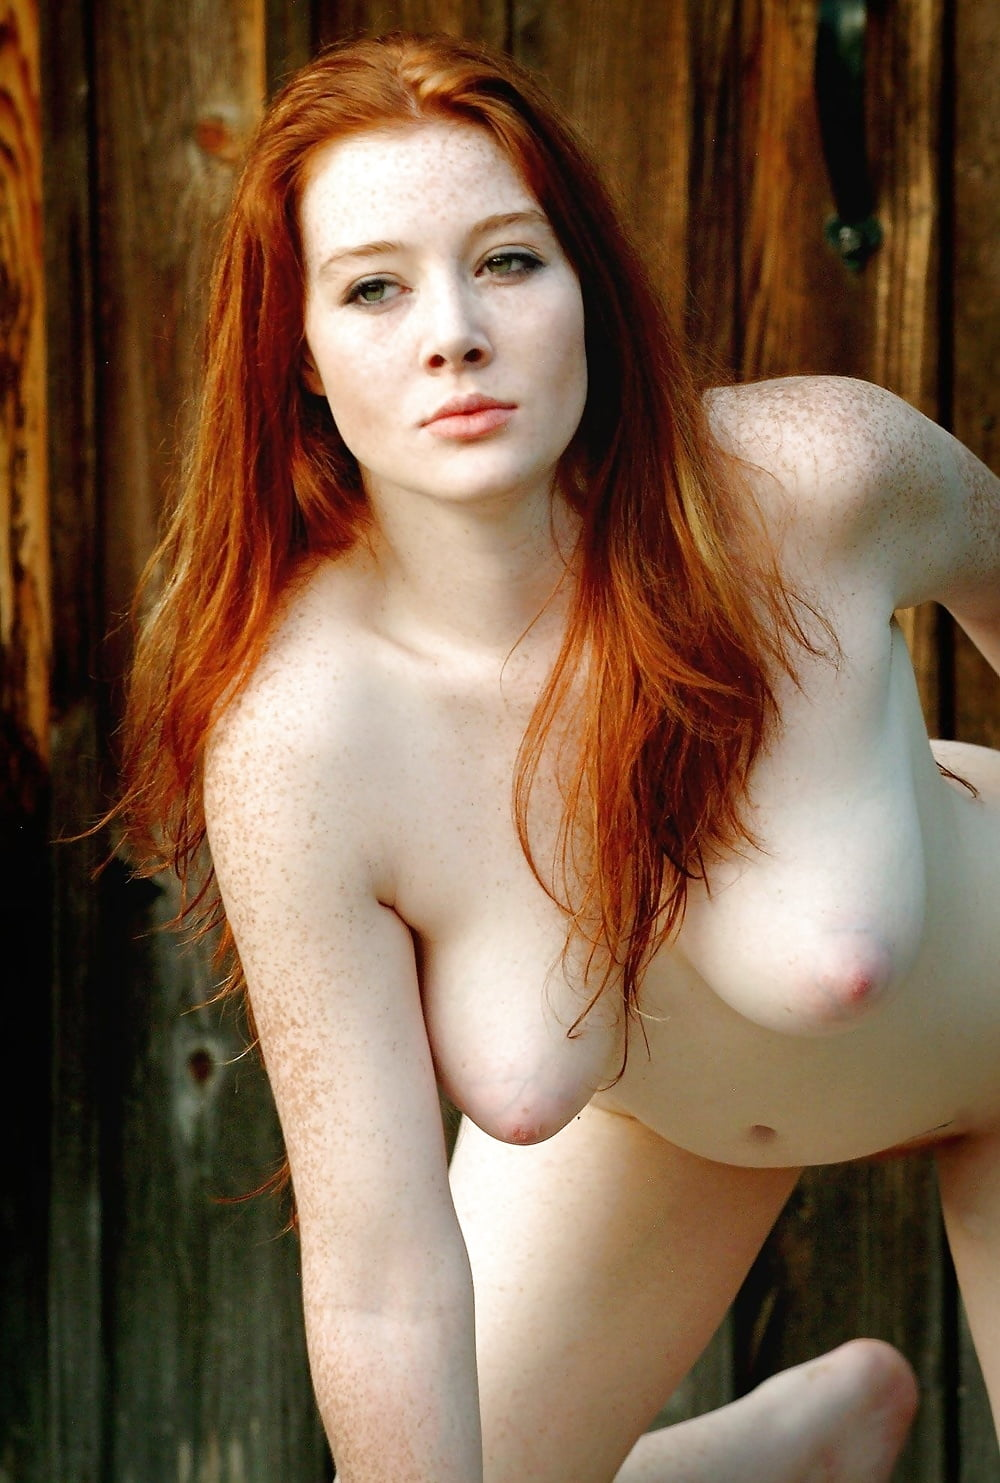 freckled-chested-playboy-girls-playboy-porn-stars-naked